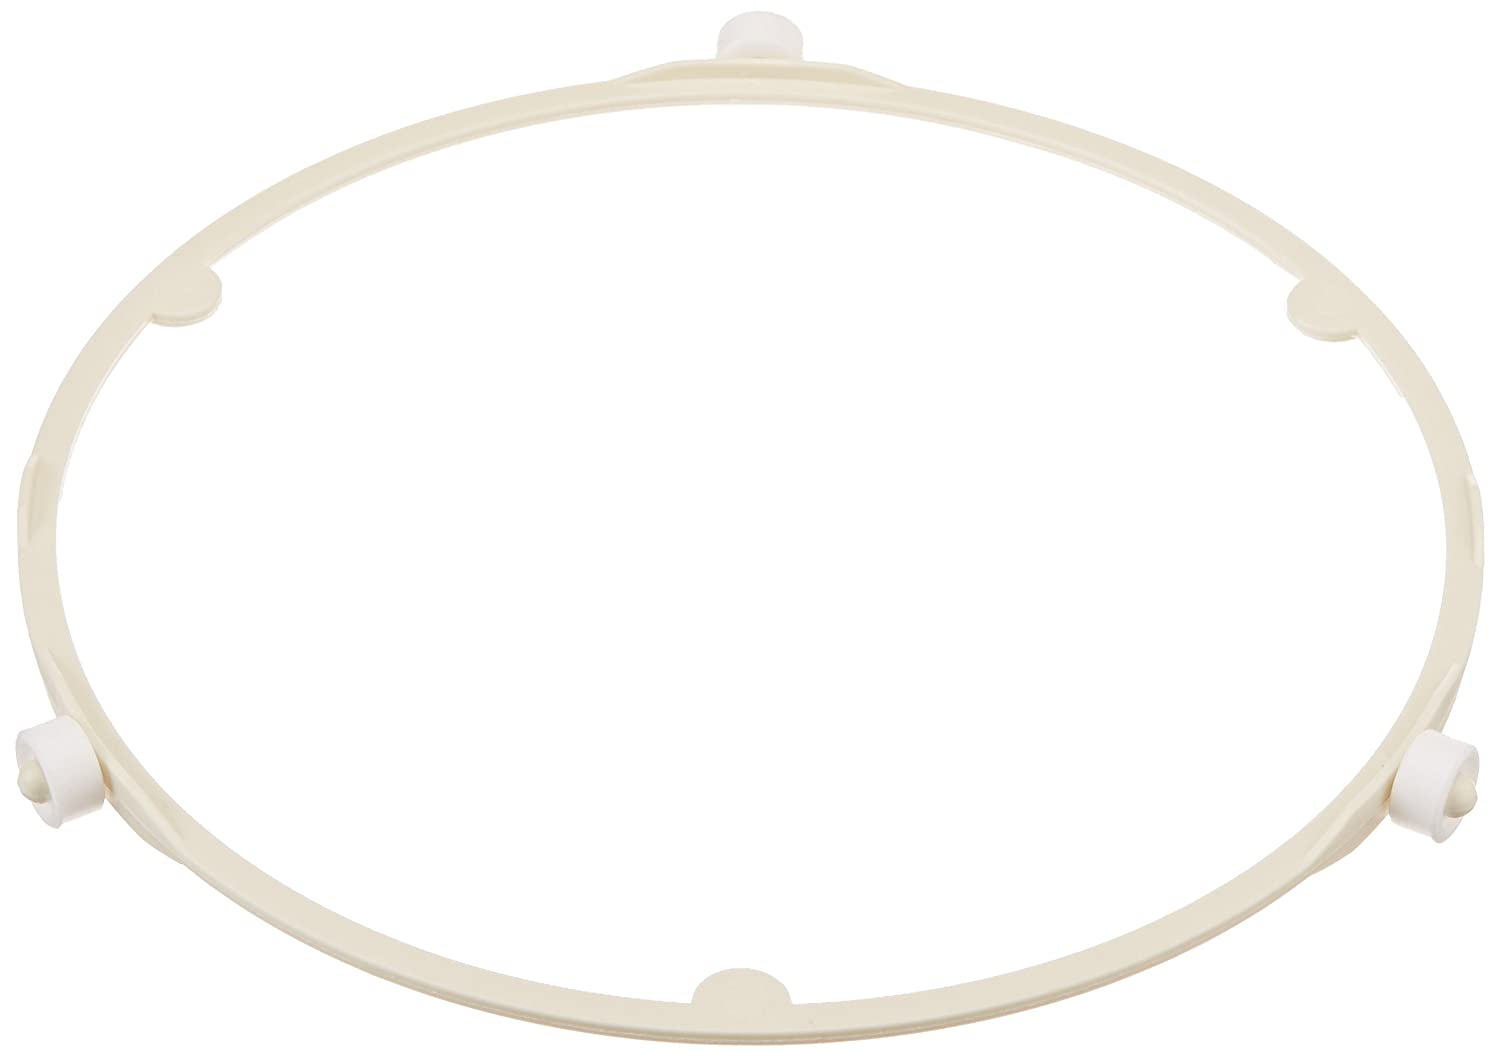 Frigidaire 5304464115 Glass Tray Support Unit